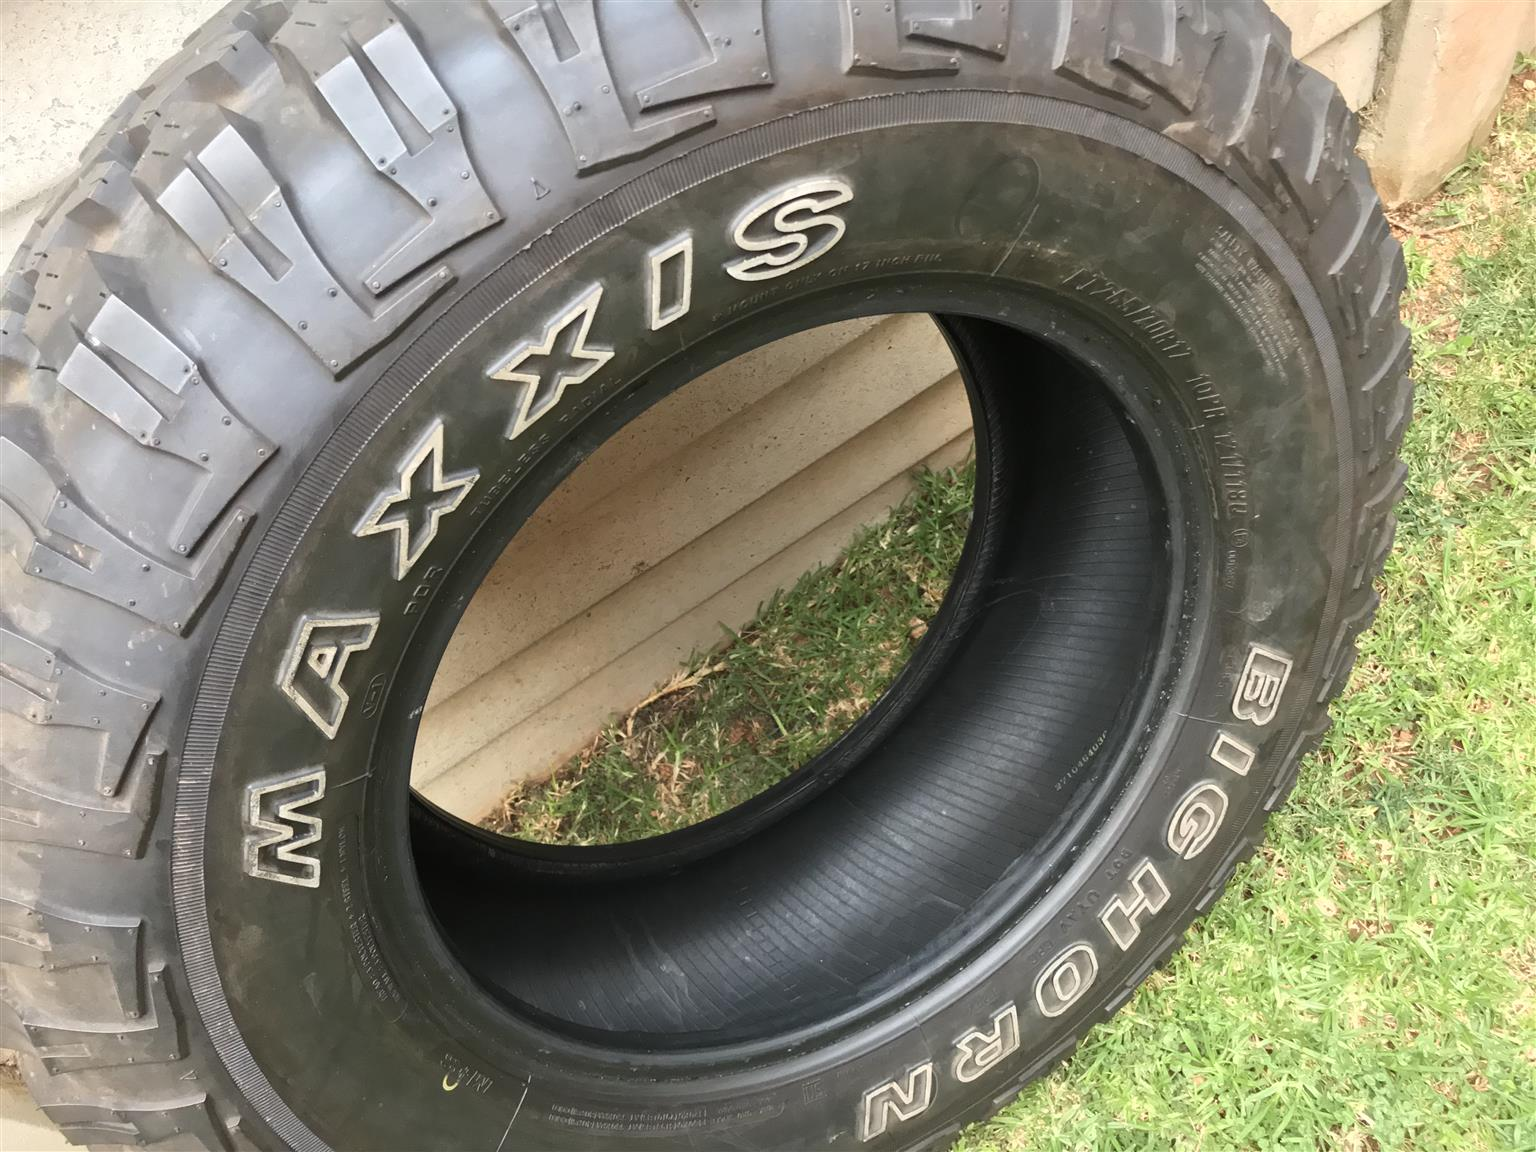 New Maxxis 762 mud 265 70 17